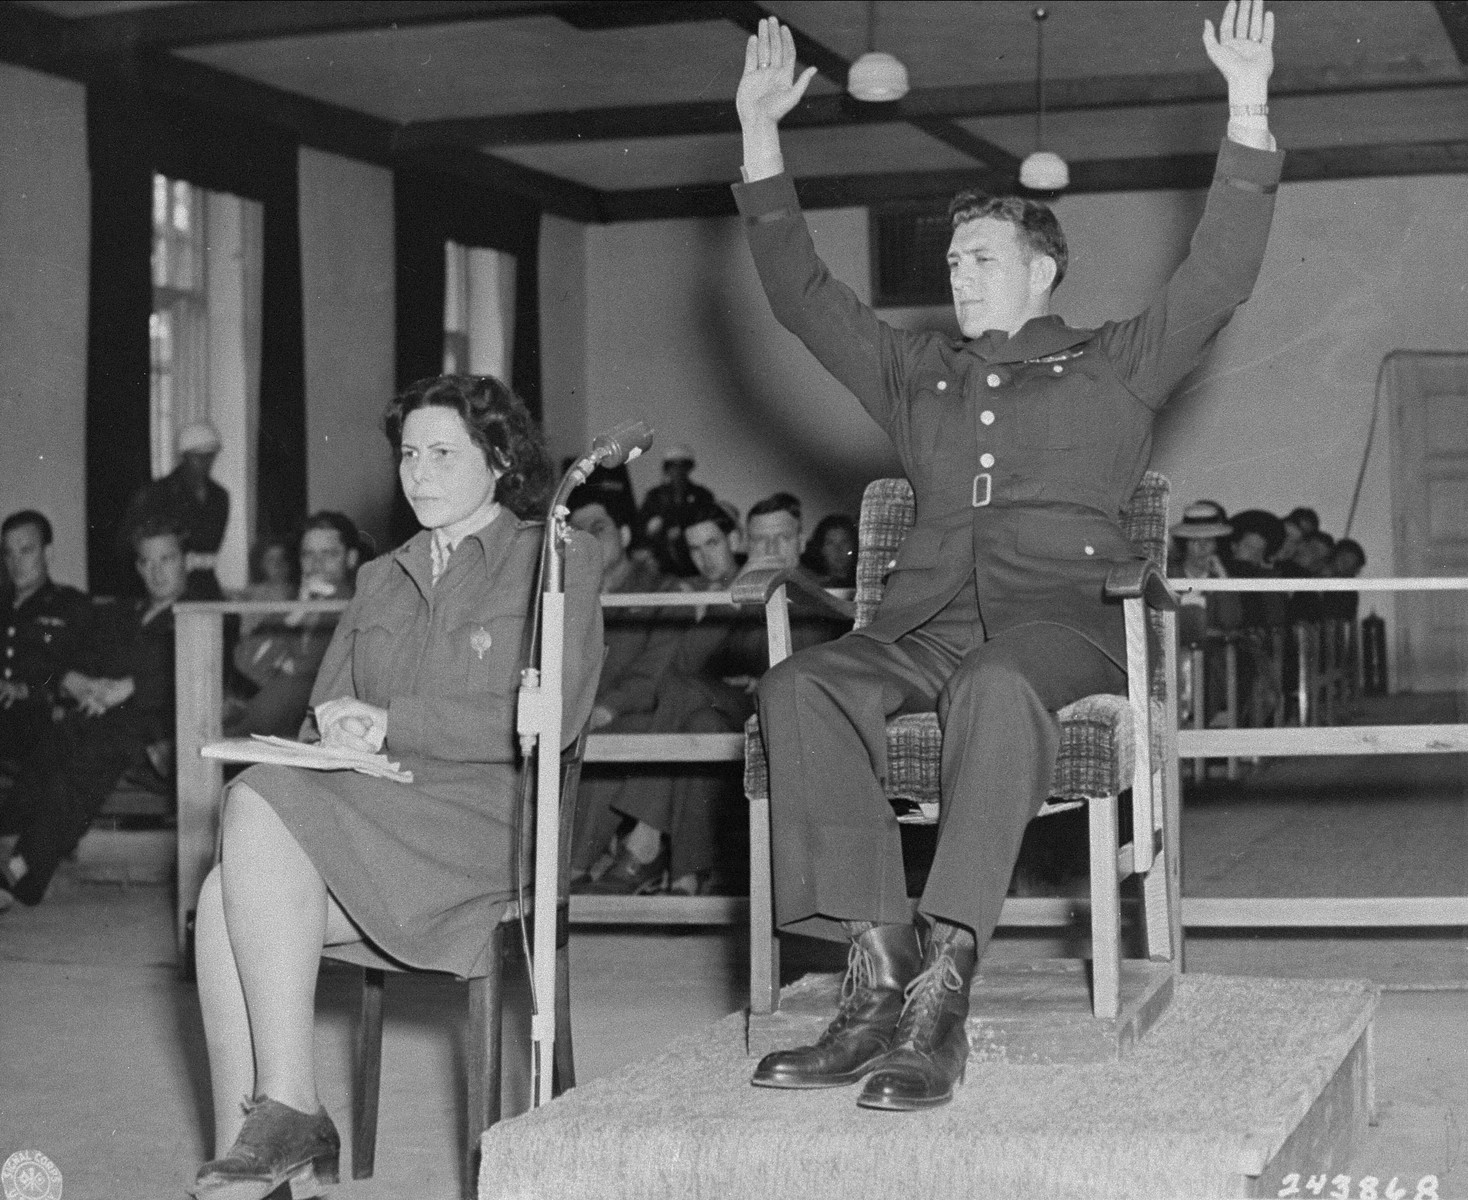 Former U.S. Army sergeant Kenneth Ahrens demonstrates how he surrendered to SS soldiers, during his testimony at the trial of 74 SS men charged with perpetrating the Malmedy atrocity.